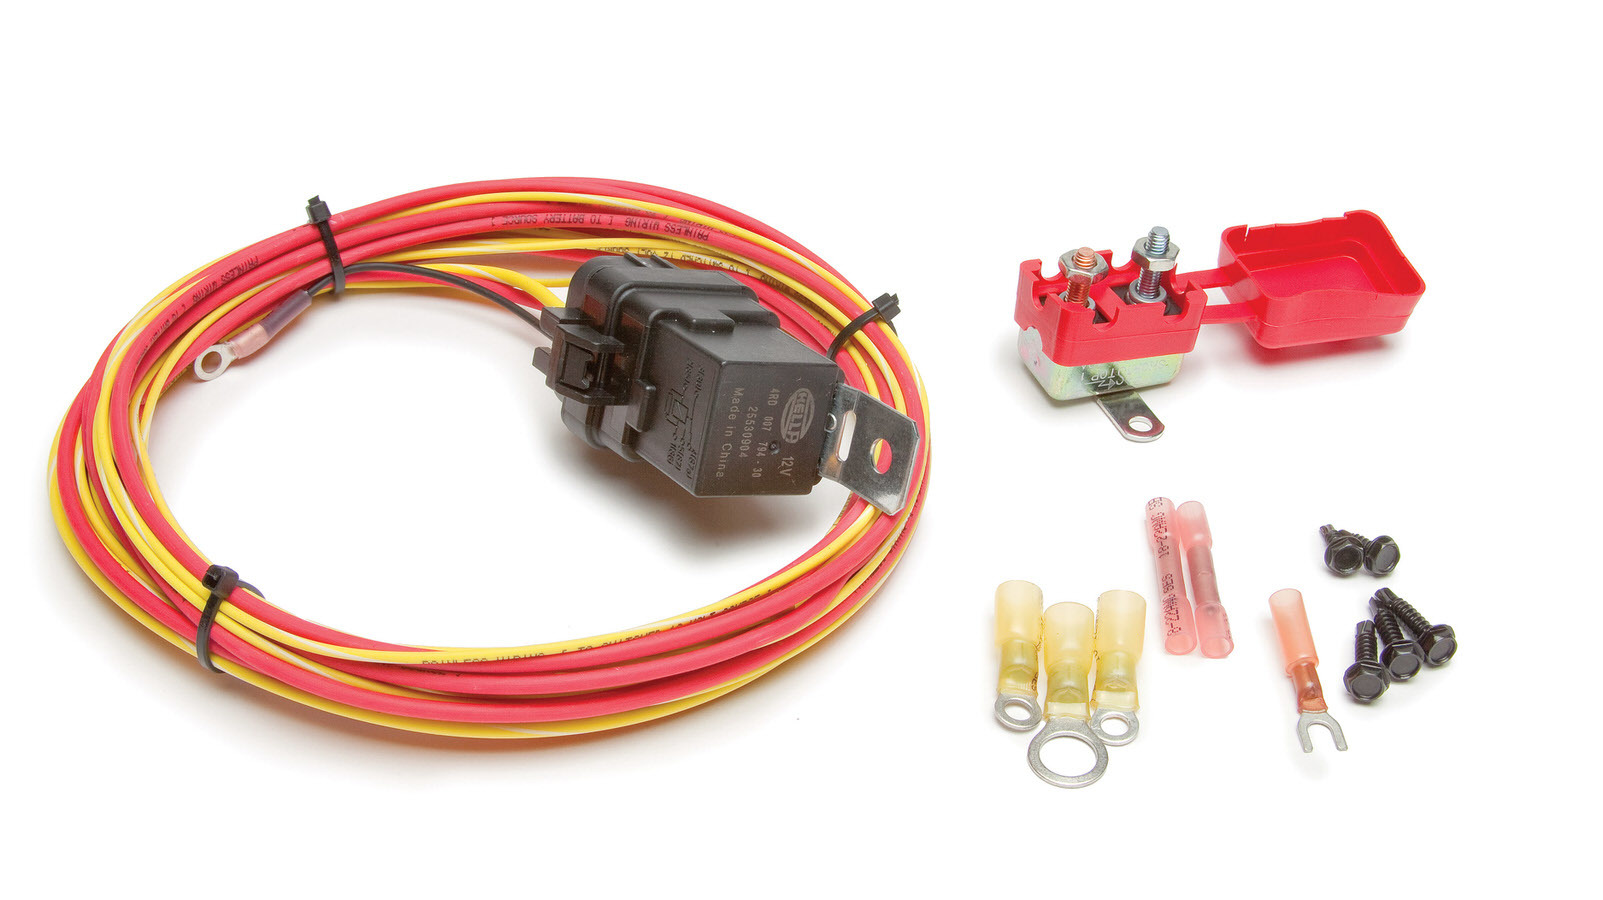 Painless Wiring 30131 Relay Switch, Weatherproof, Double Pole, 30 amp, 12V, Wiring Pigtail Included, Fuel Pump, Kit